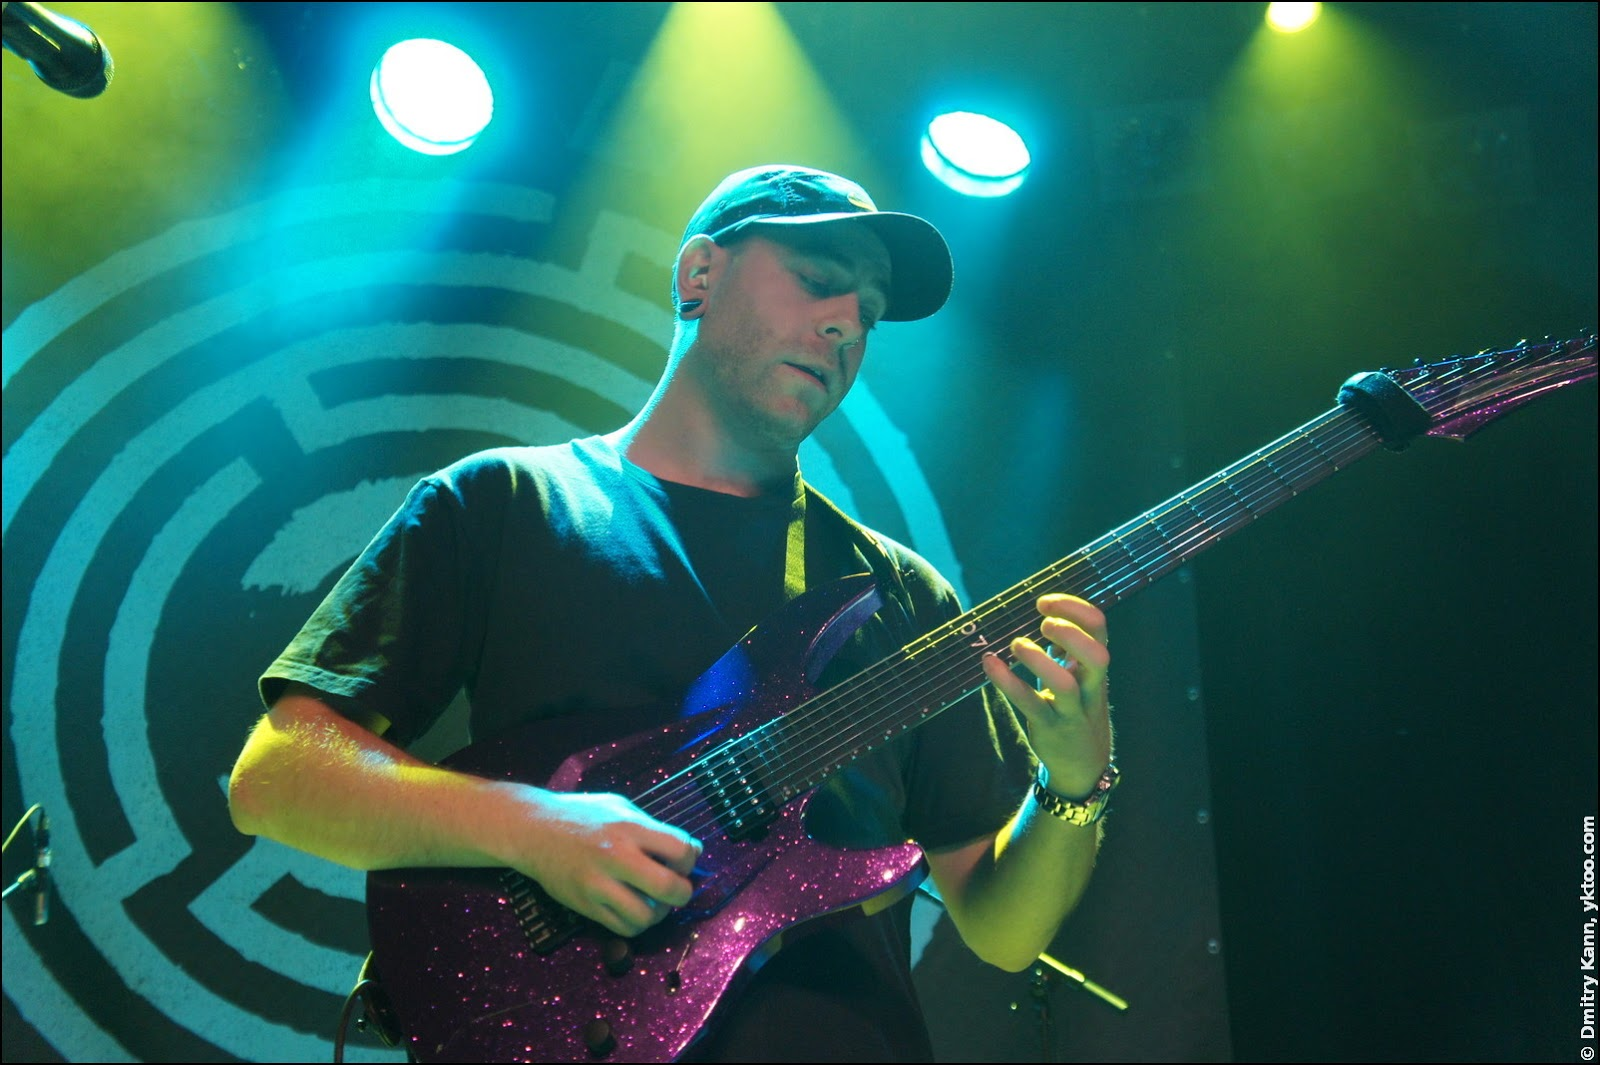 Aaron Marshall / Intervals.